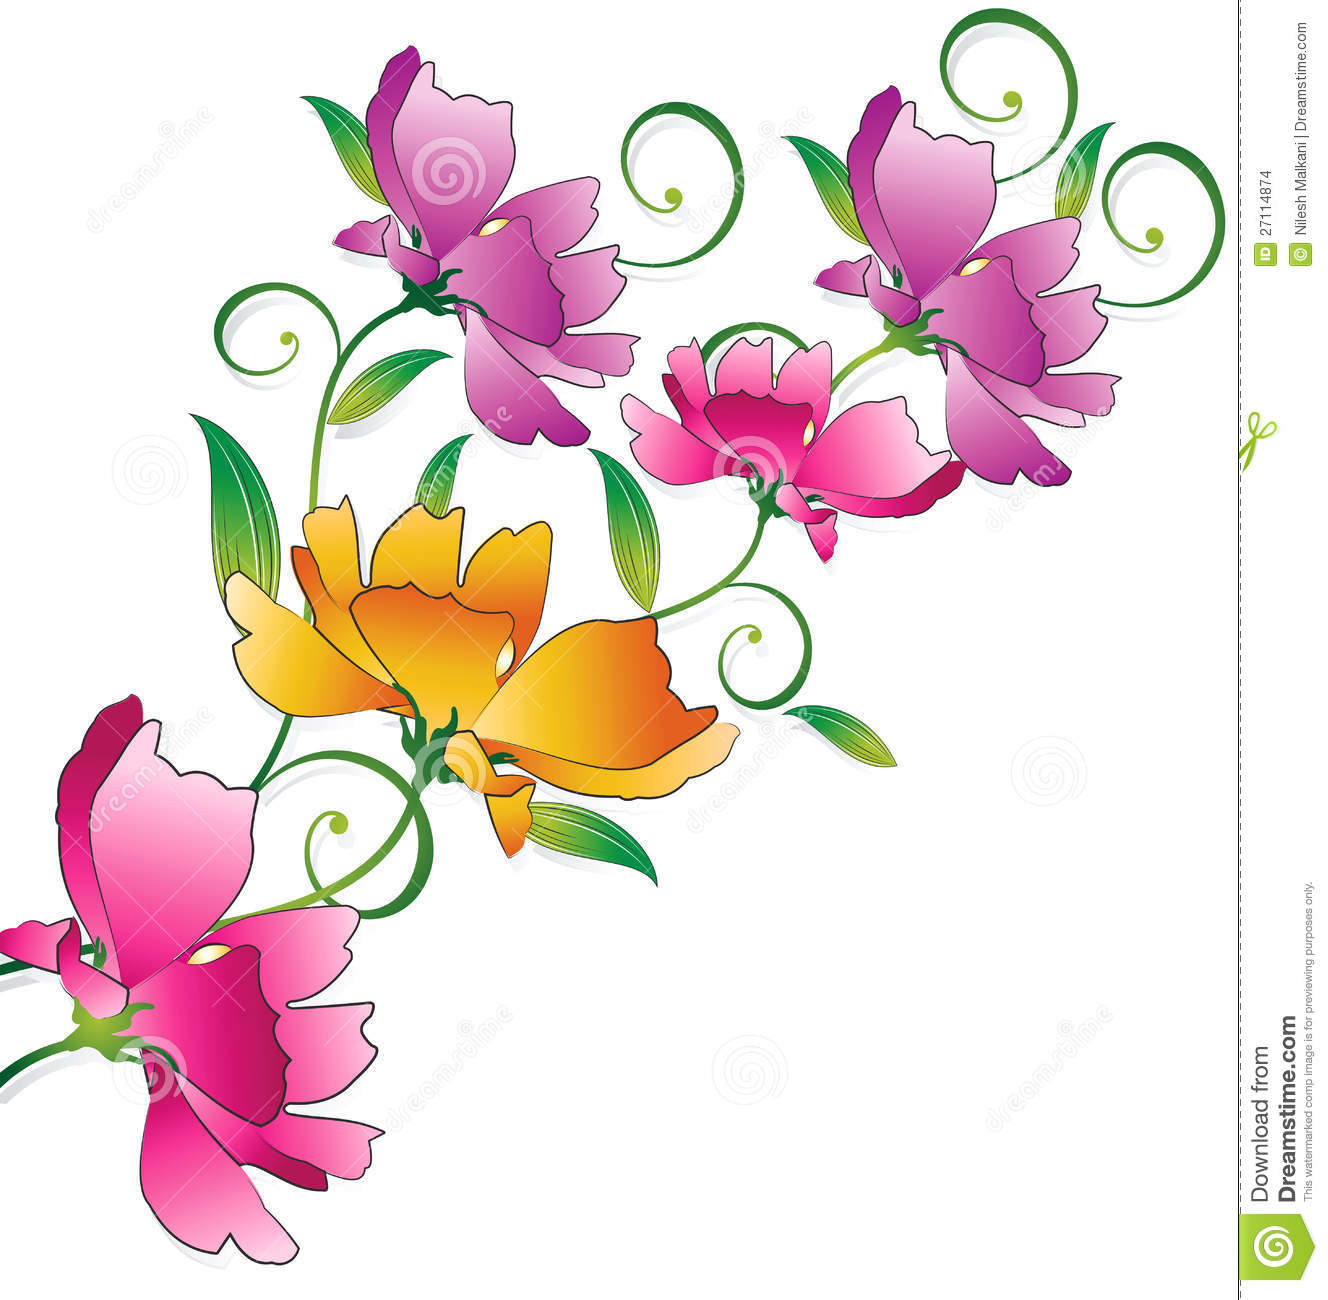 Fancy Flower Bunch For Greeting Card Stock Vector ...